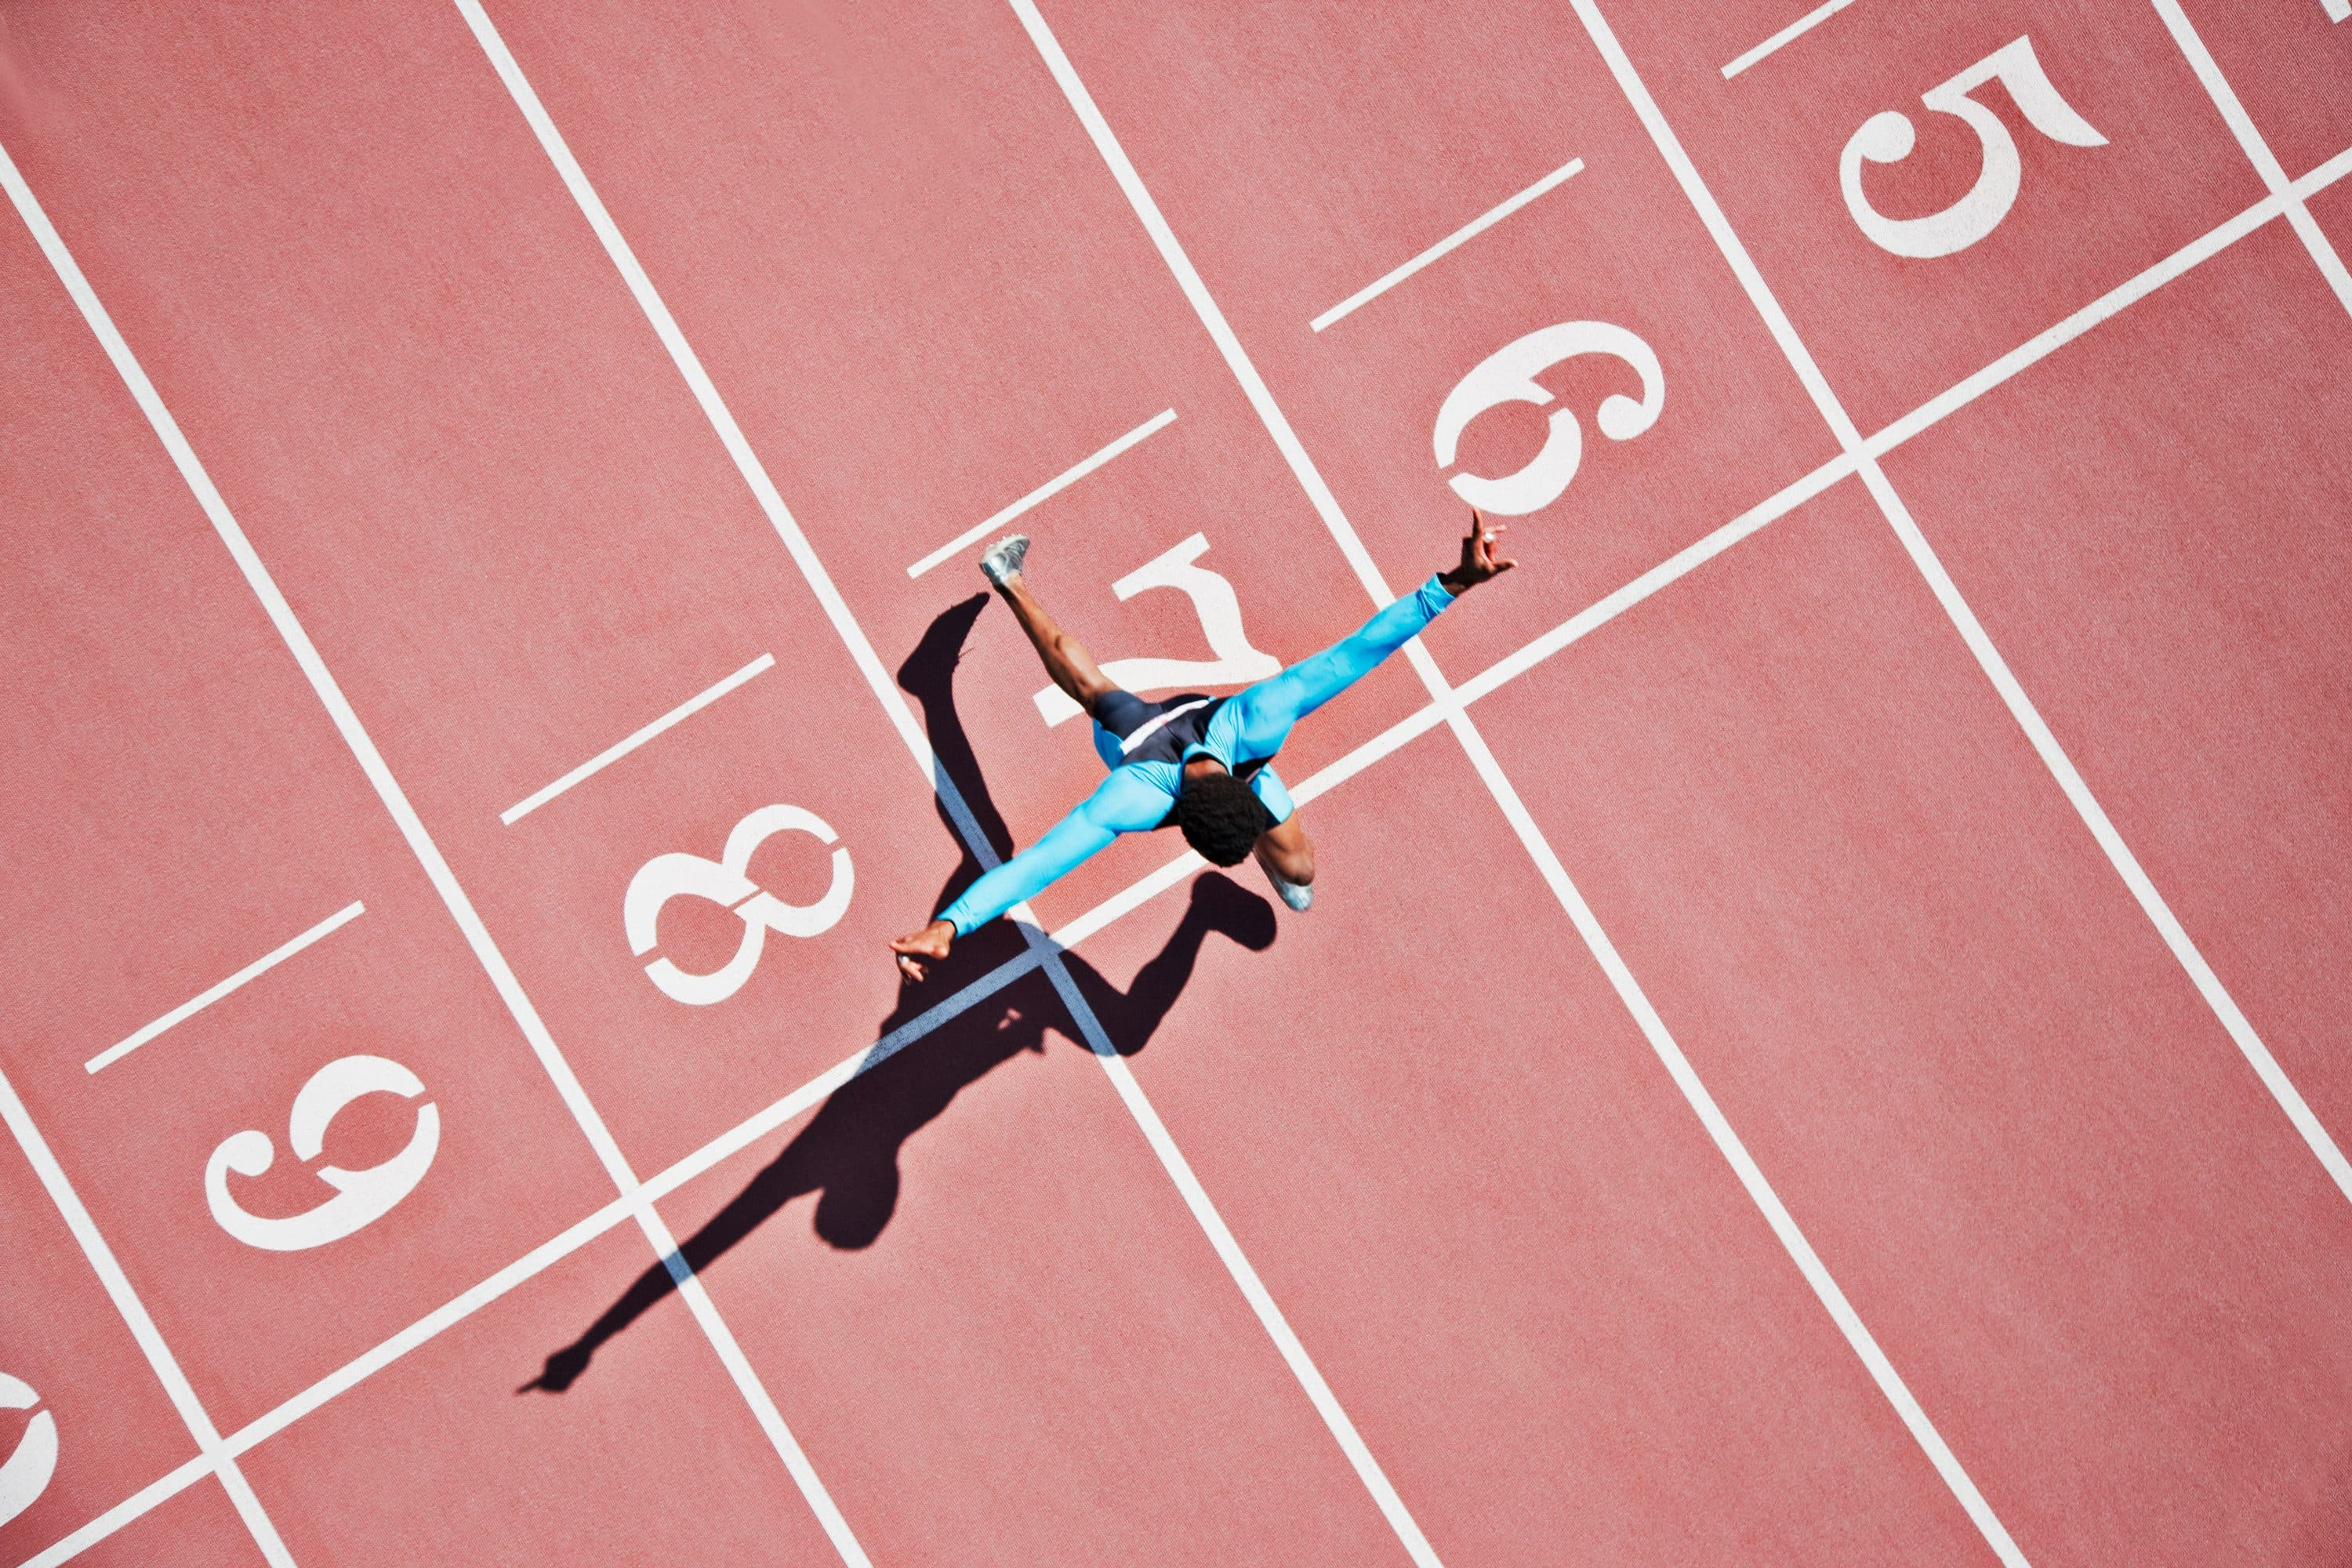 Person crossing the finishing line on a running track